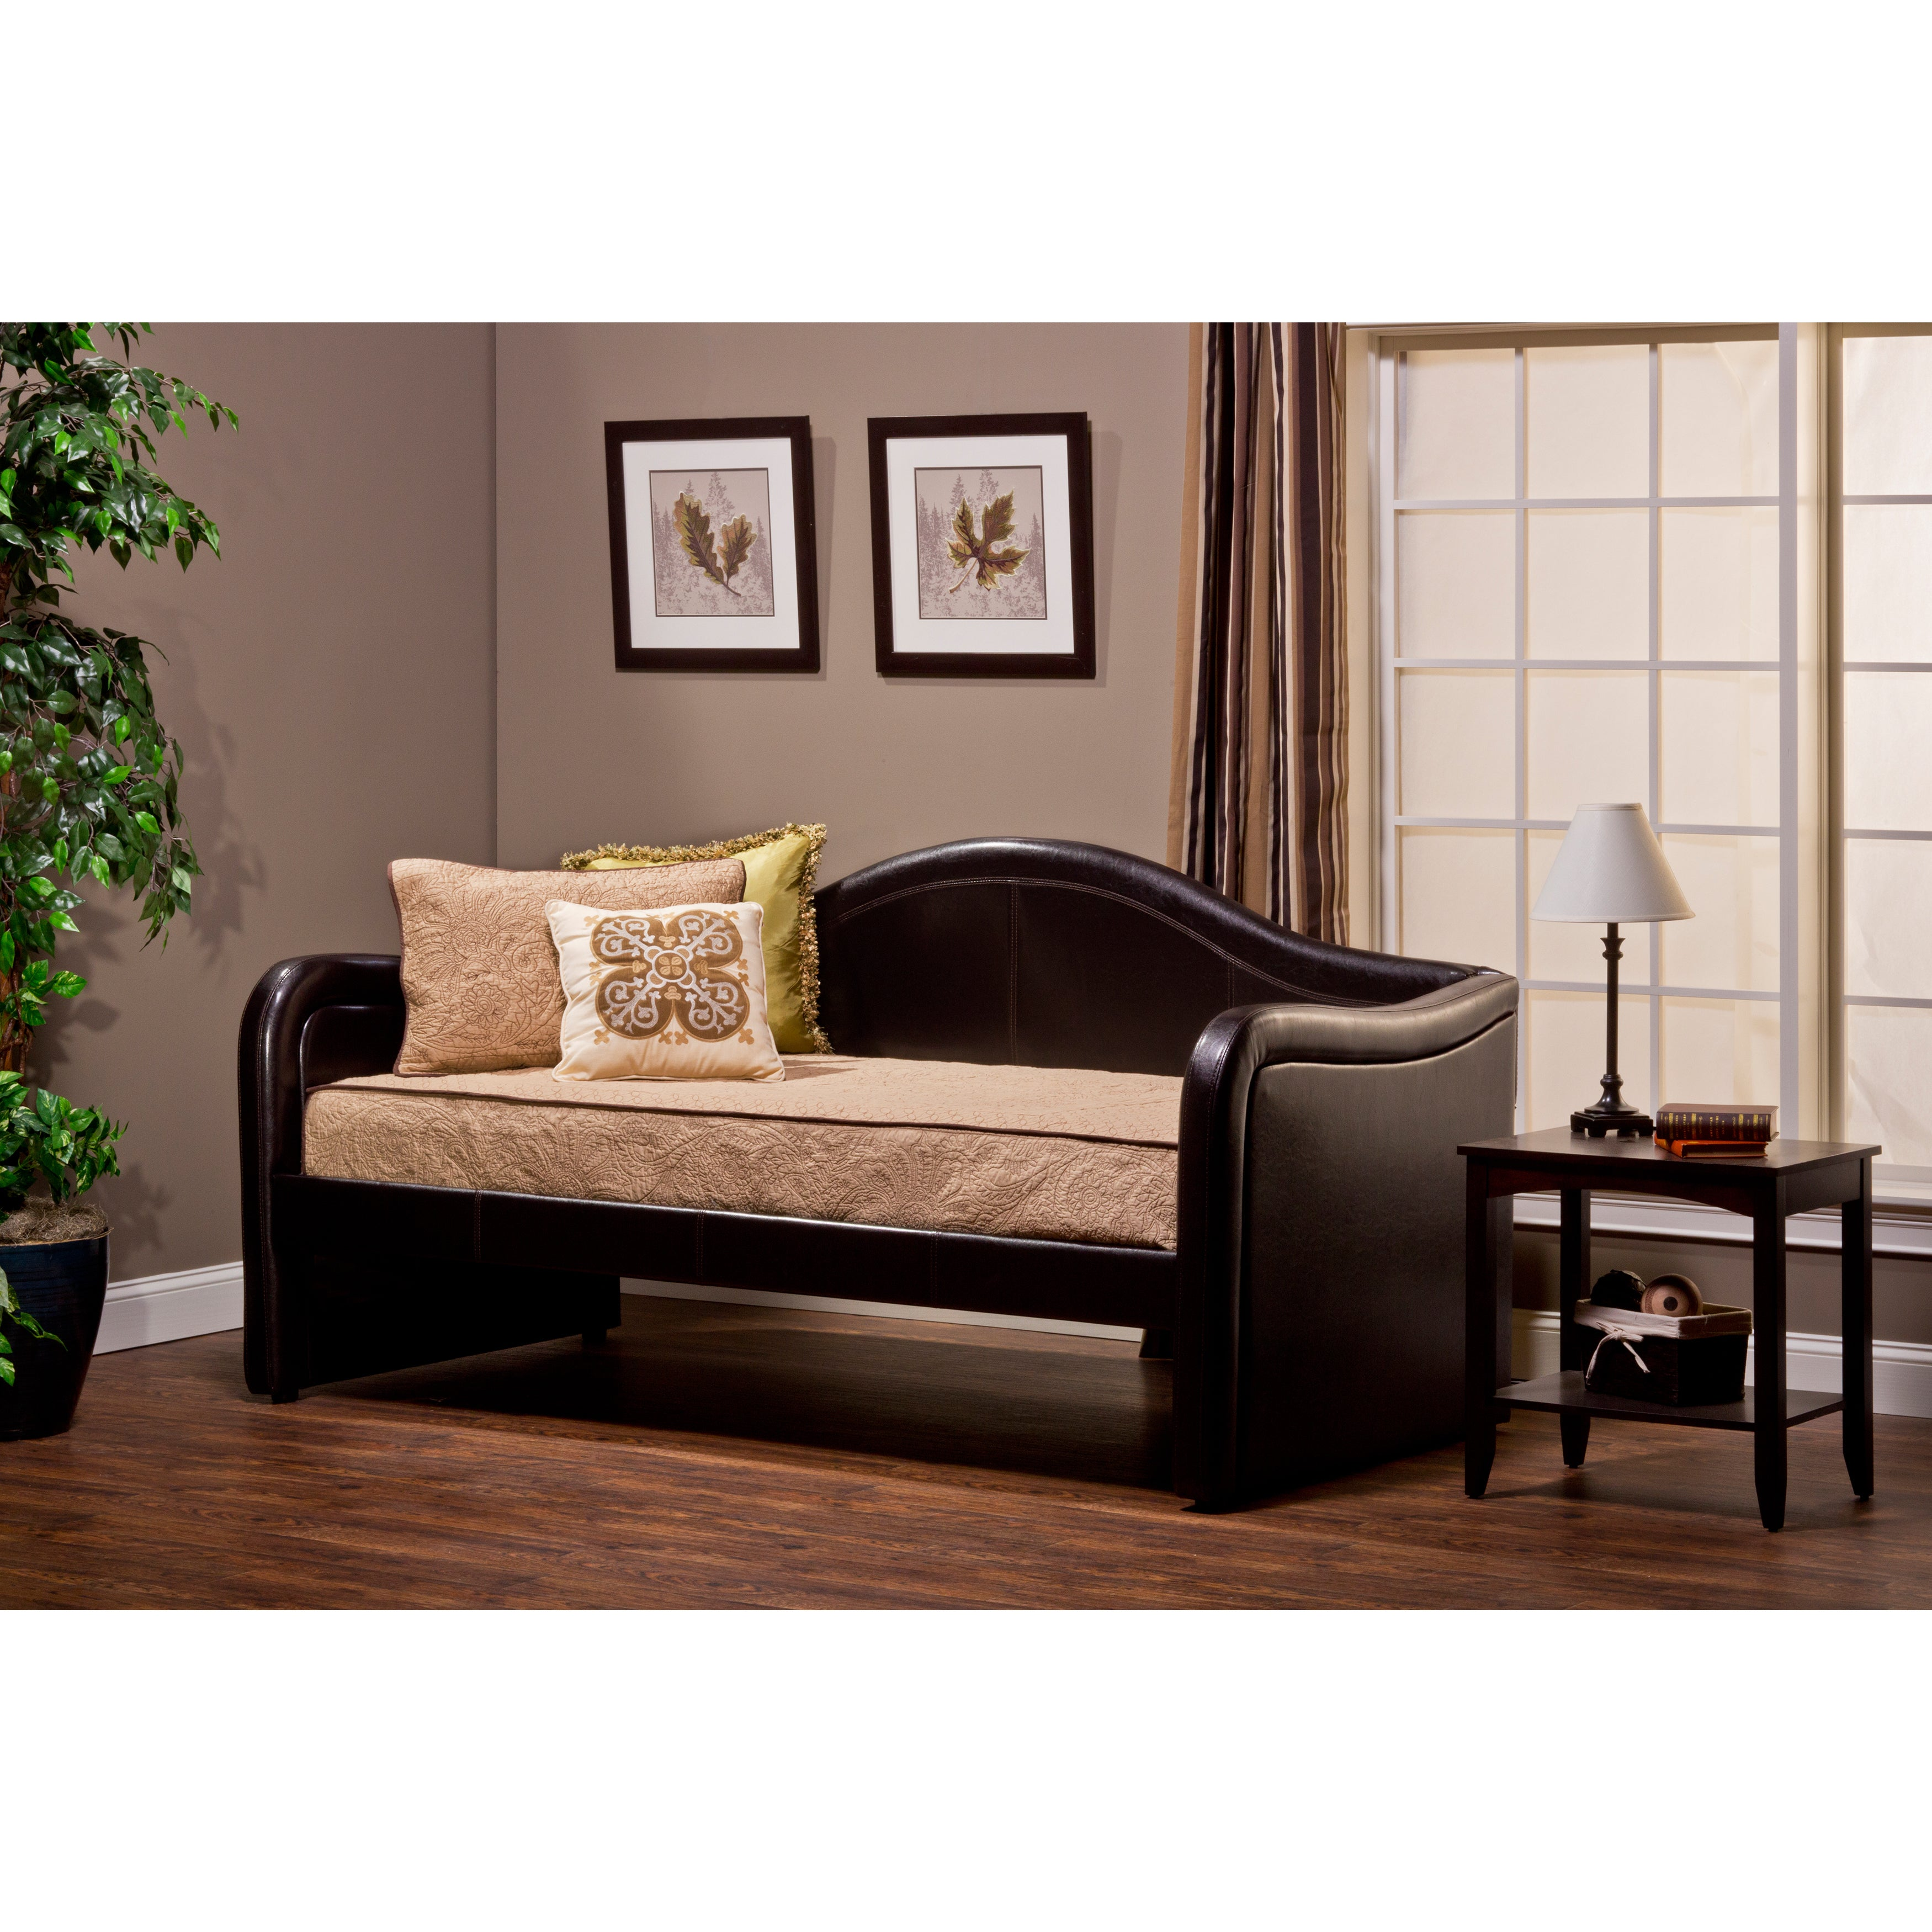 Hillsdale Brenton Daybed (without trundle), Brown, Size Twin